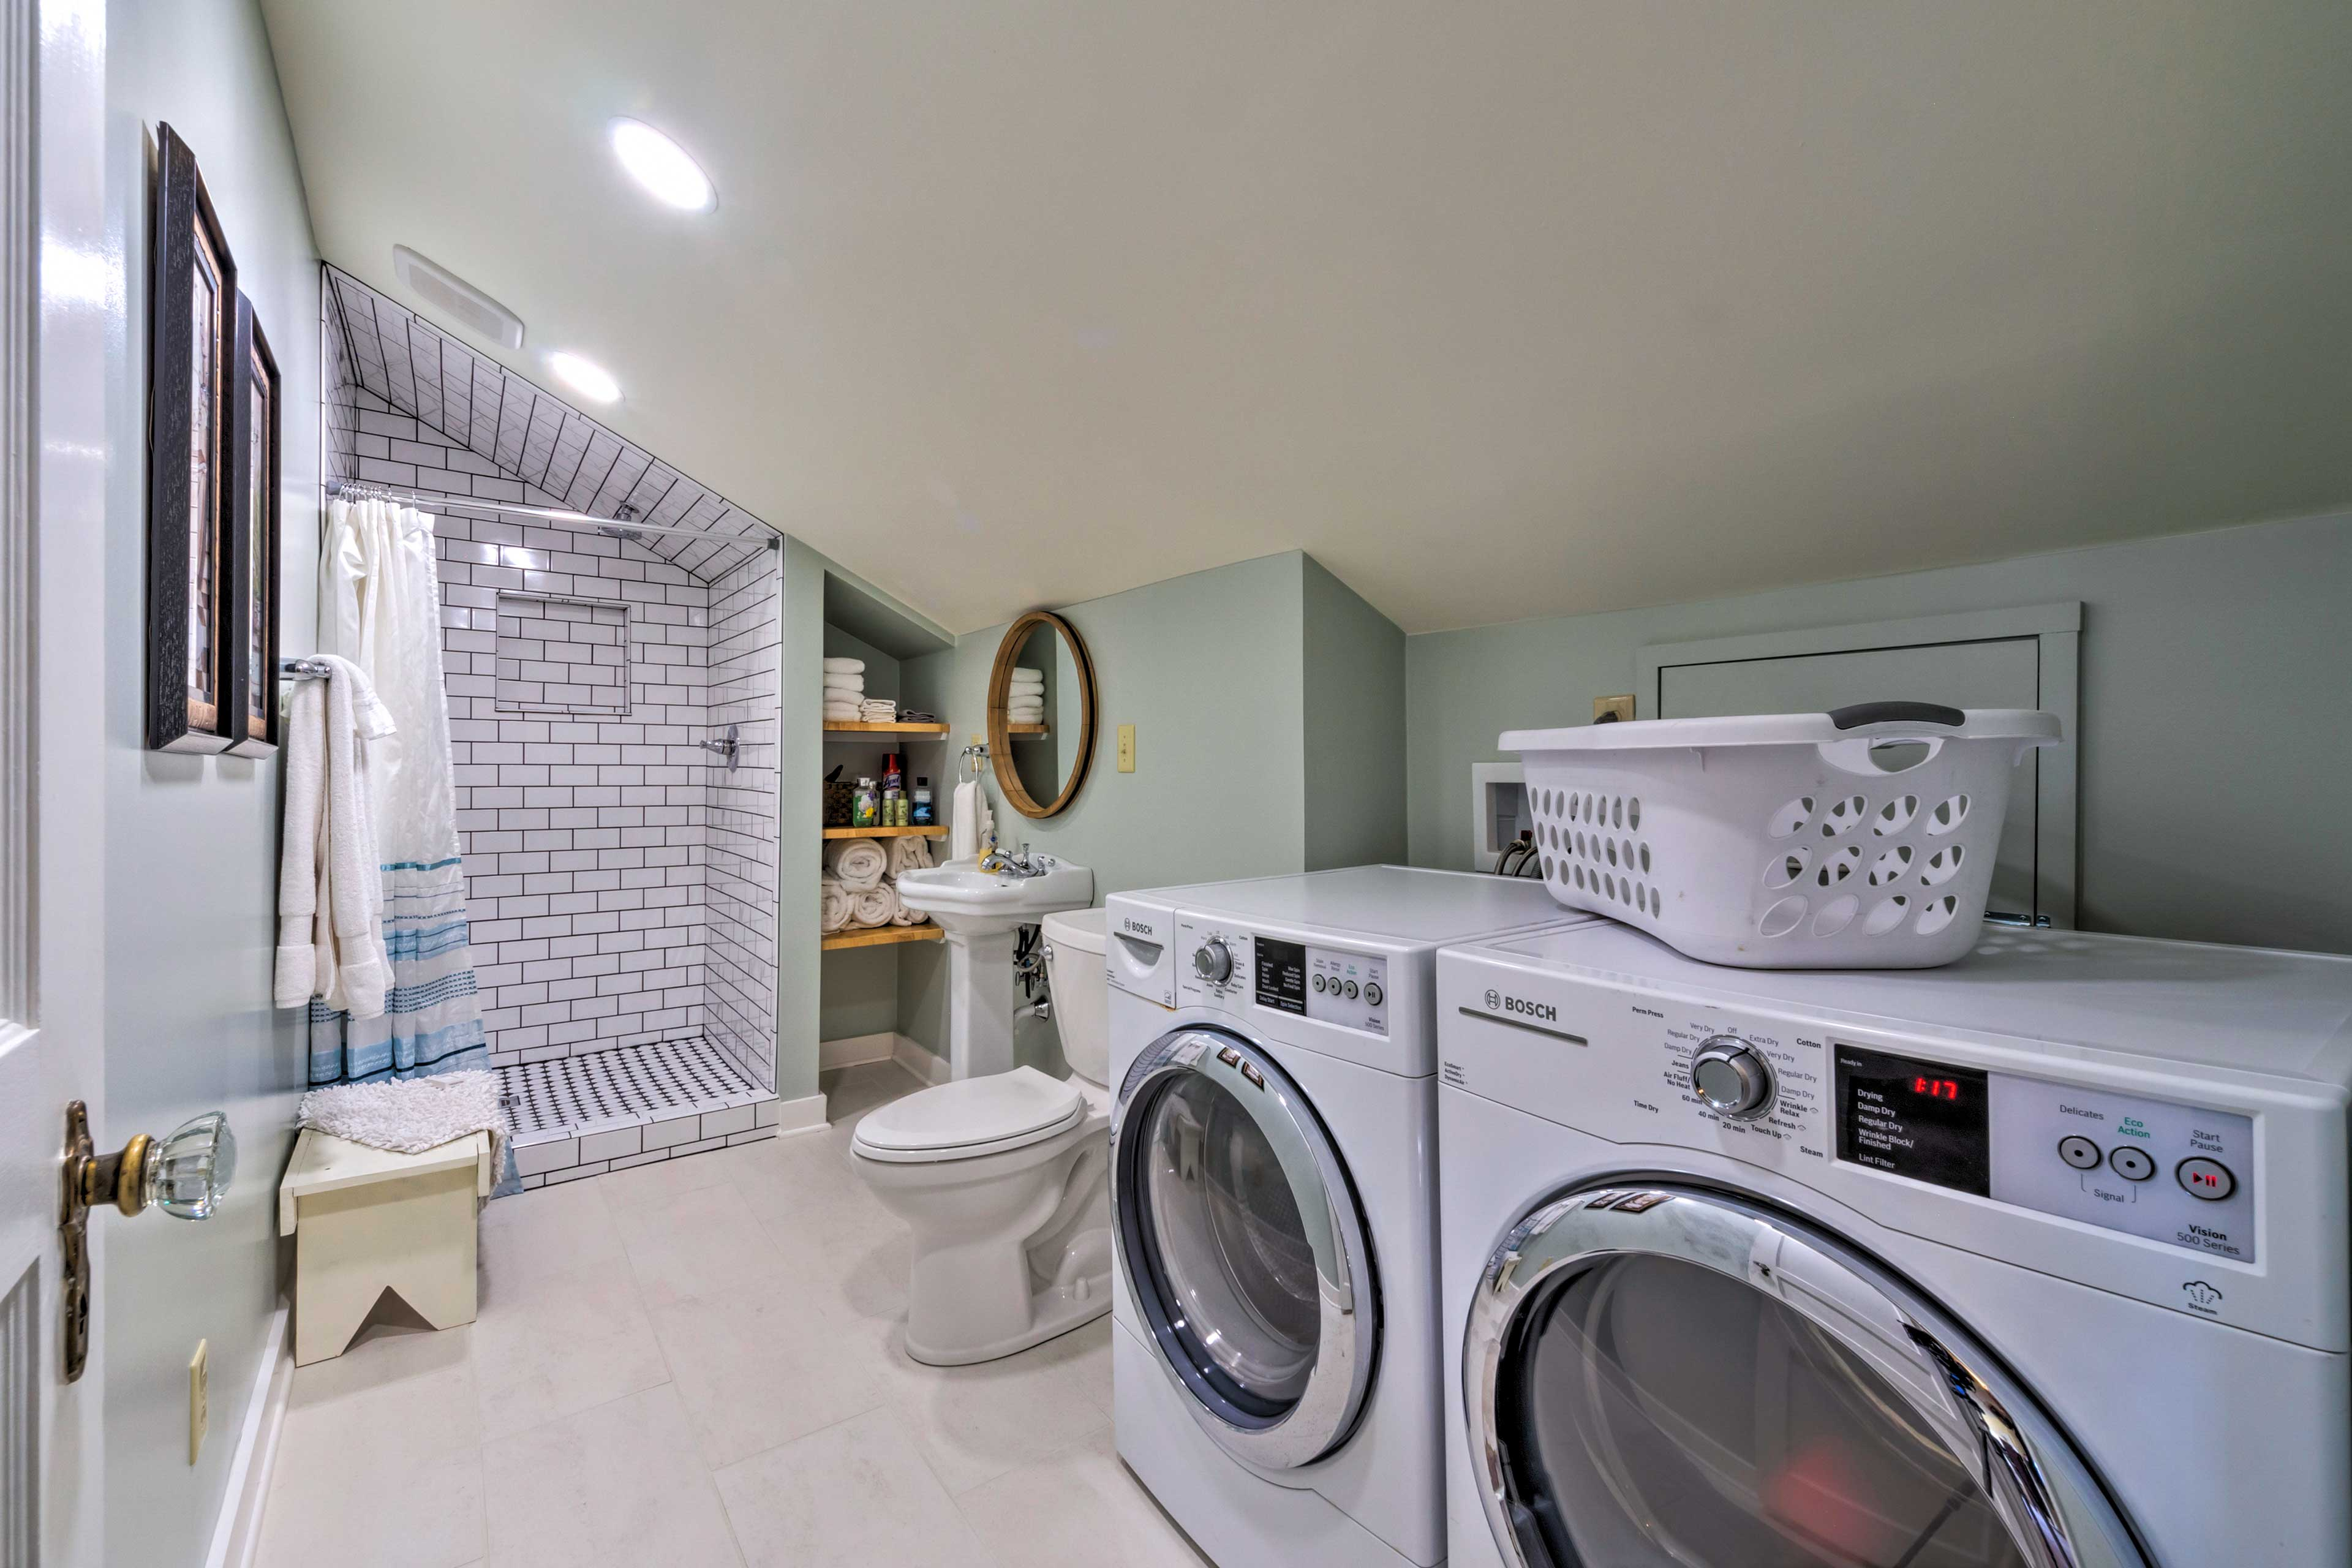 No need to pack your whole wardrobe - laundry machines are provided!